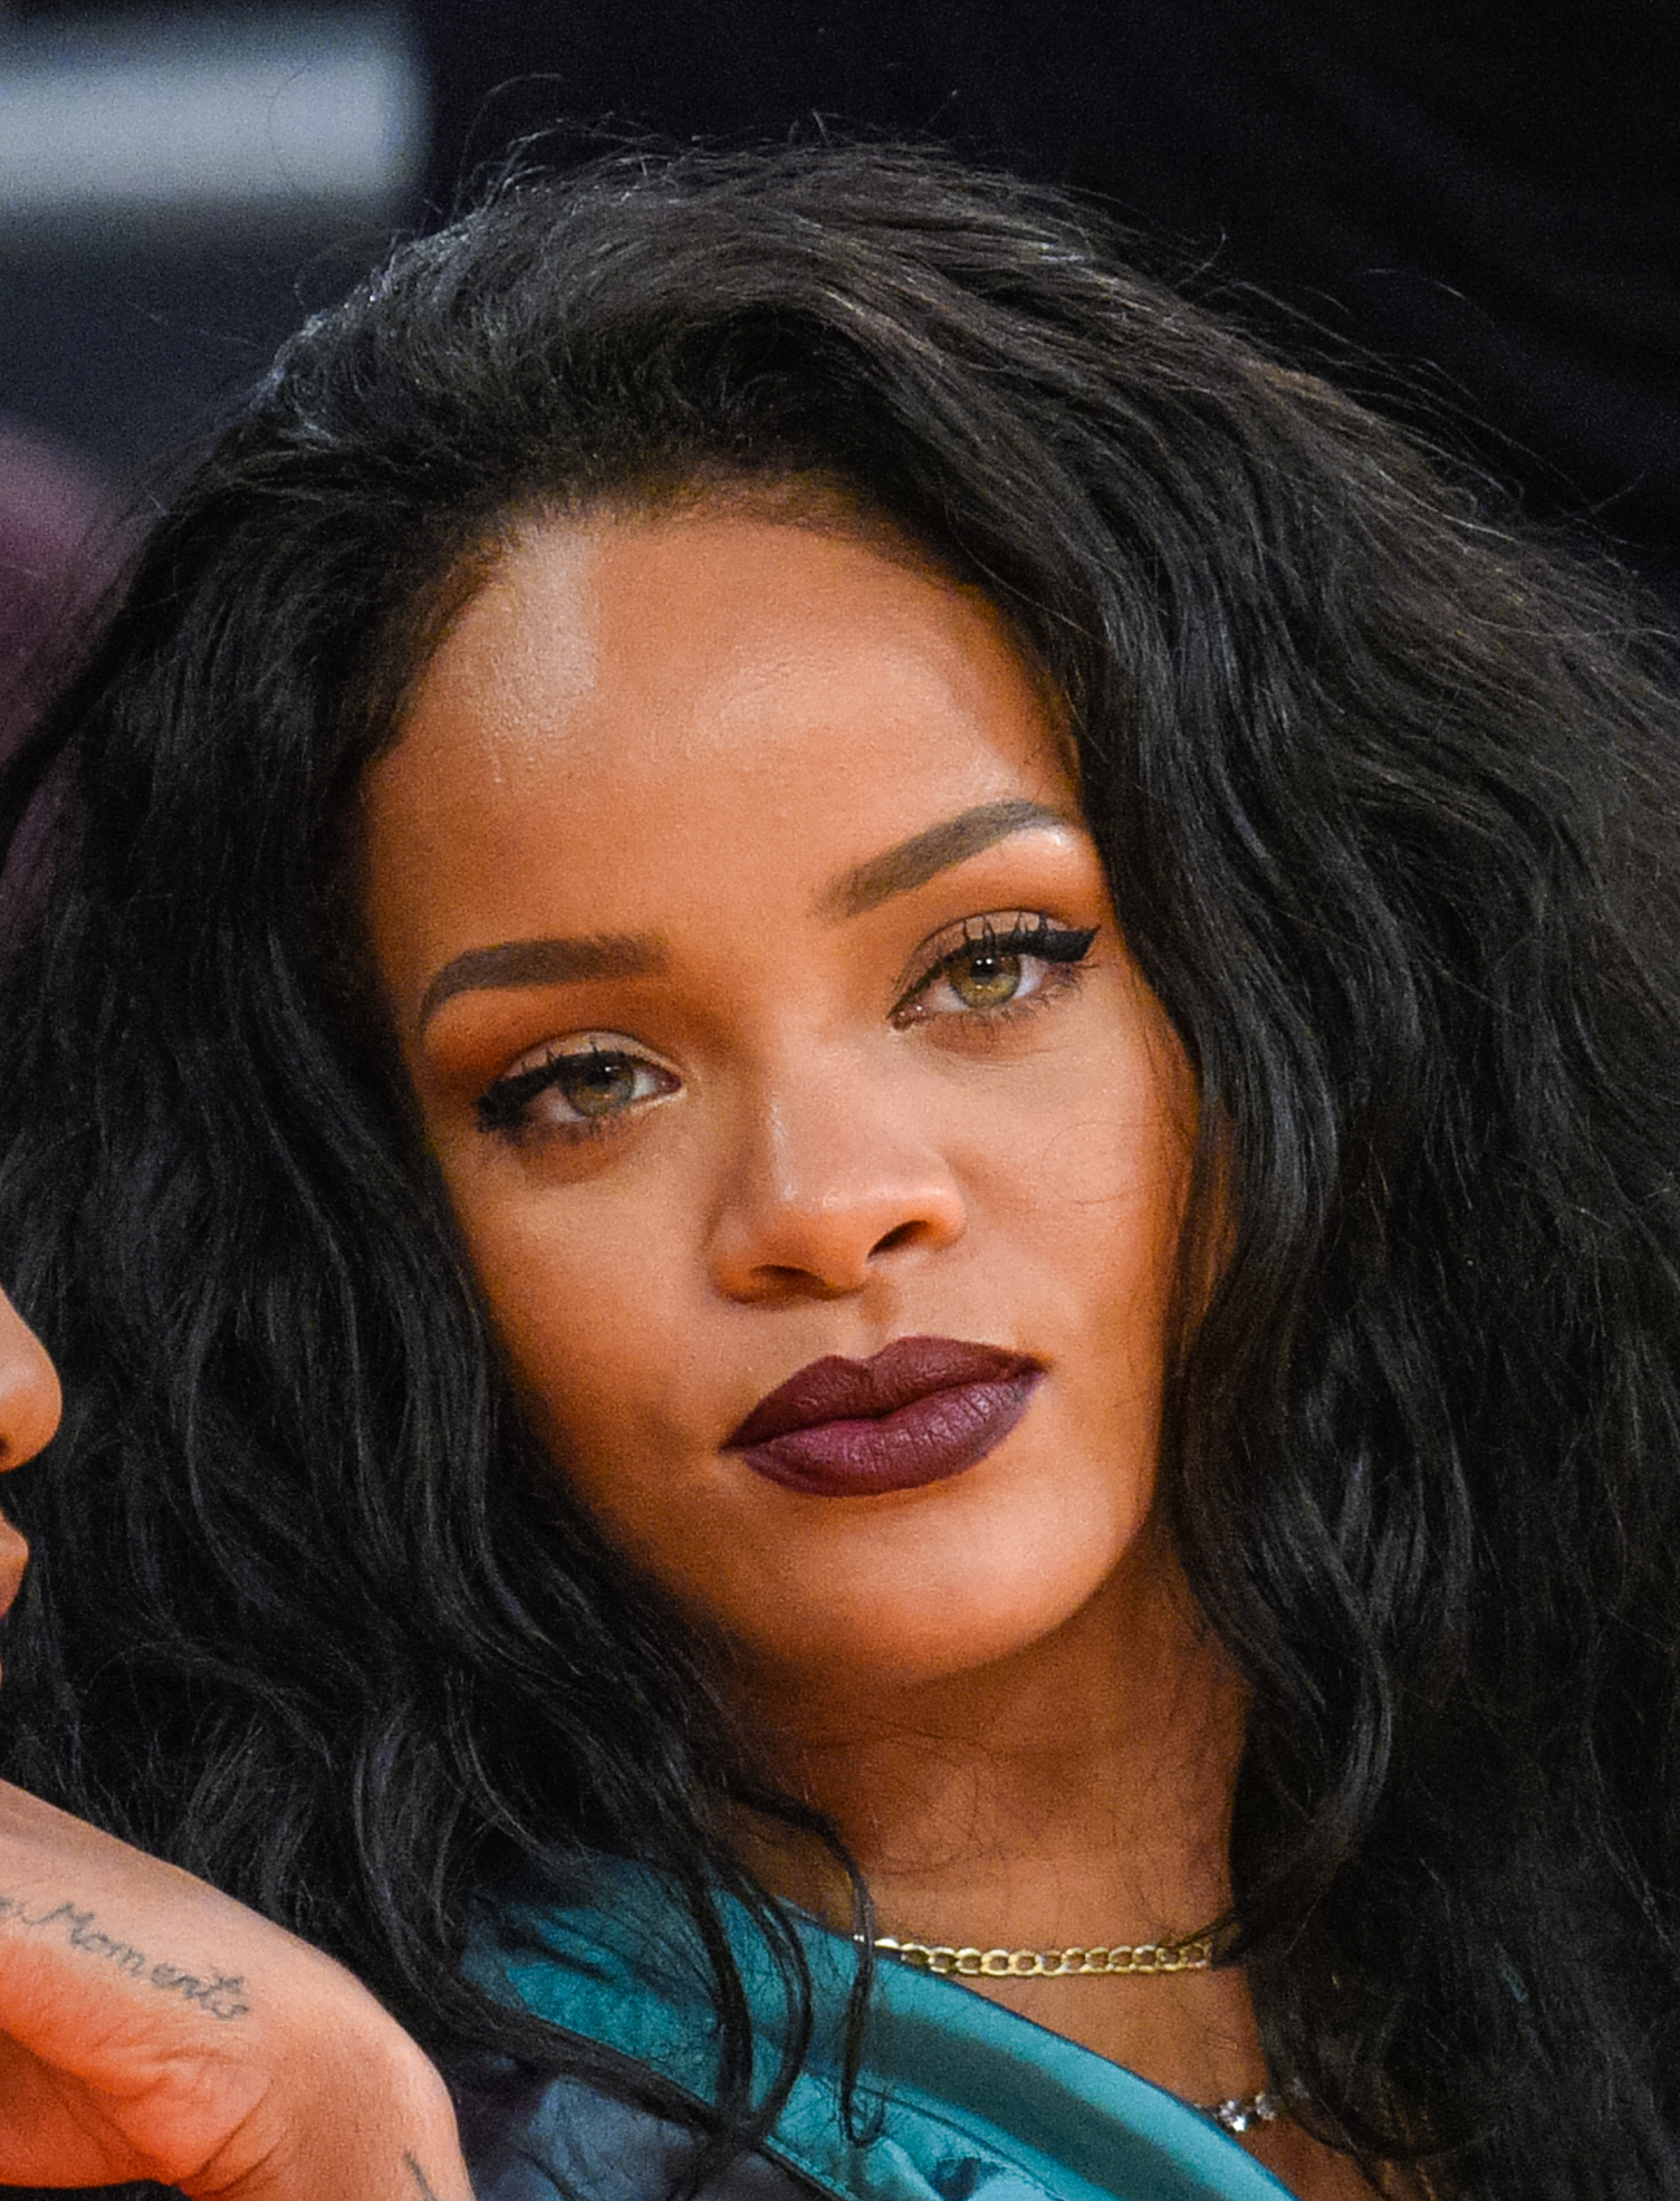 Rihanna attends a basketball game between the Cleveland Cavaliers and the Los Angeles Lakers at Staples Center on January 15, 2015 in Los Angeles, California.